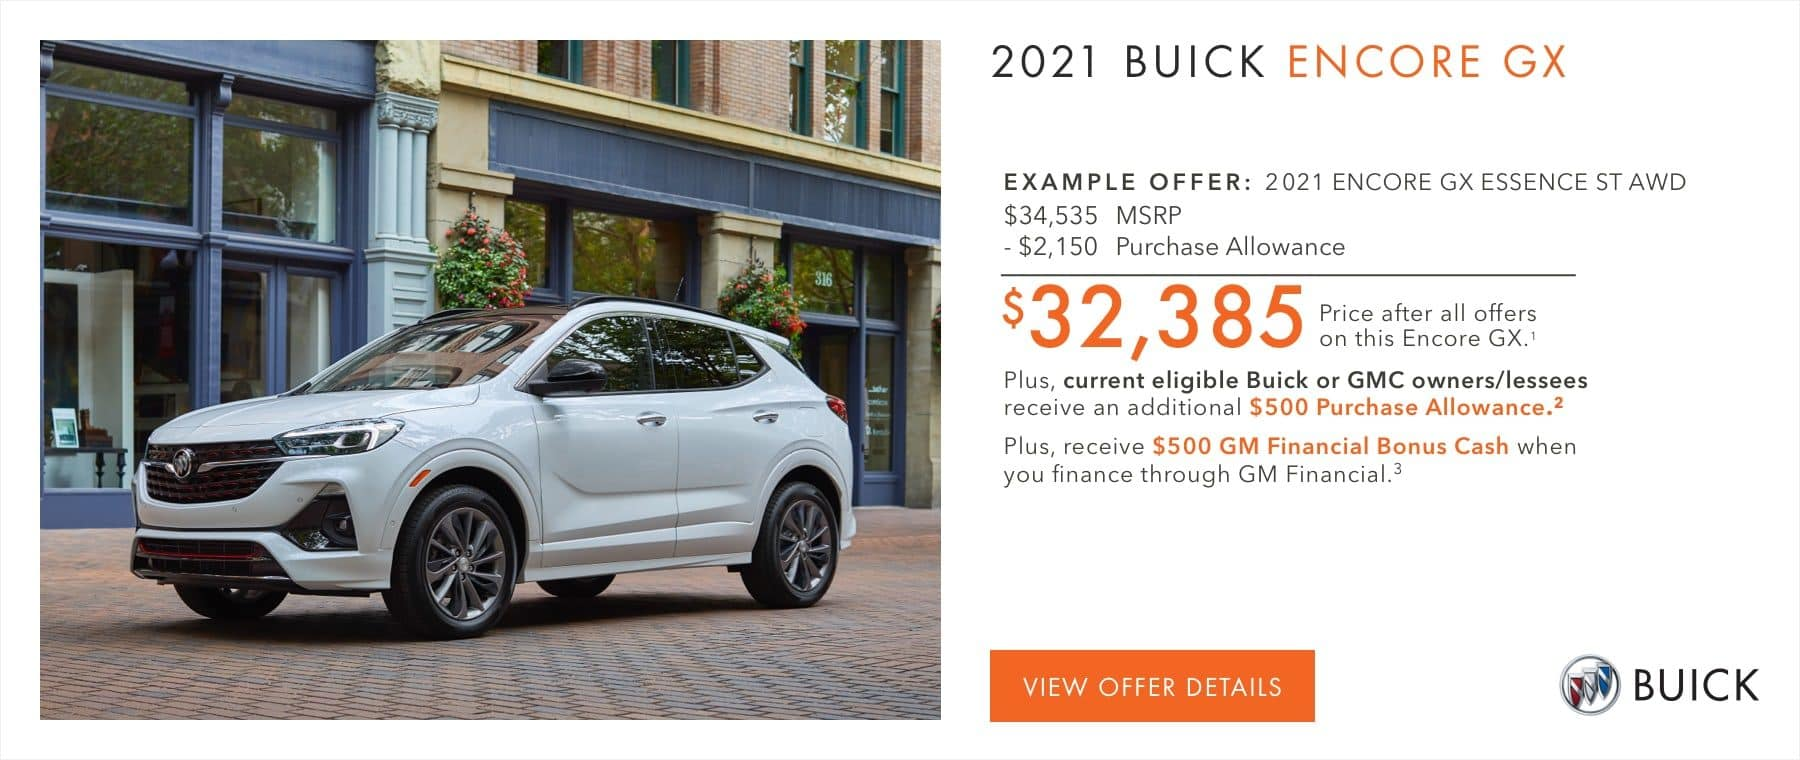 EXAMPLE OFFER: 2021 ENCORE GX ESSENCE ST AWD $34,535 MSRP -$2,150 Purchase Allowance $32,385 Price after all offers on this Encore GX.2 Plus, current eligible Buick or GMC owners/lessees receive an additional $500 Purchase Allowance.2 Plus, receive $500 GM Financial Bonus Cash when you finance through GM Financial.3